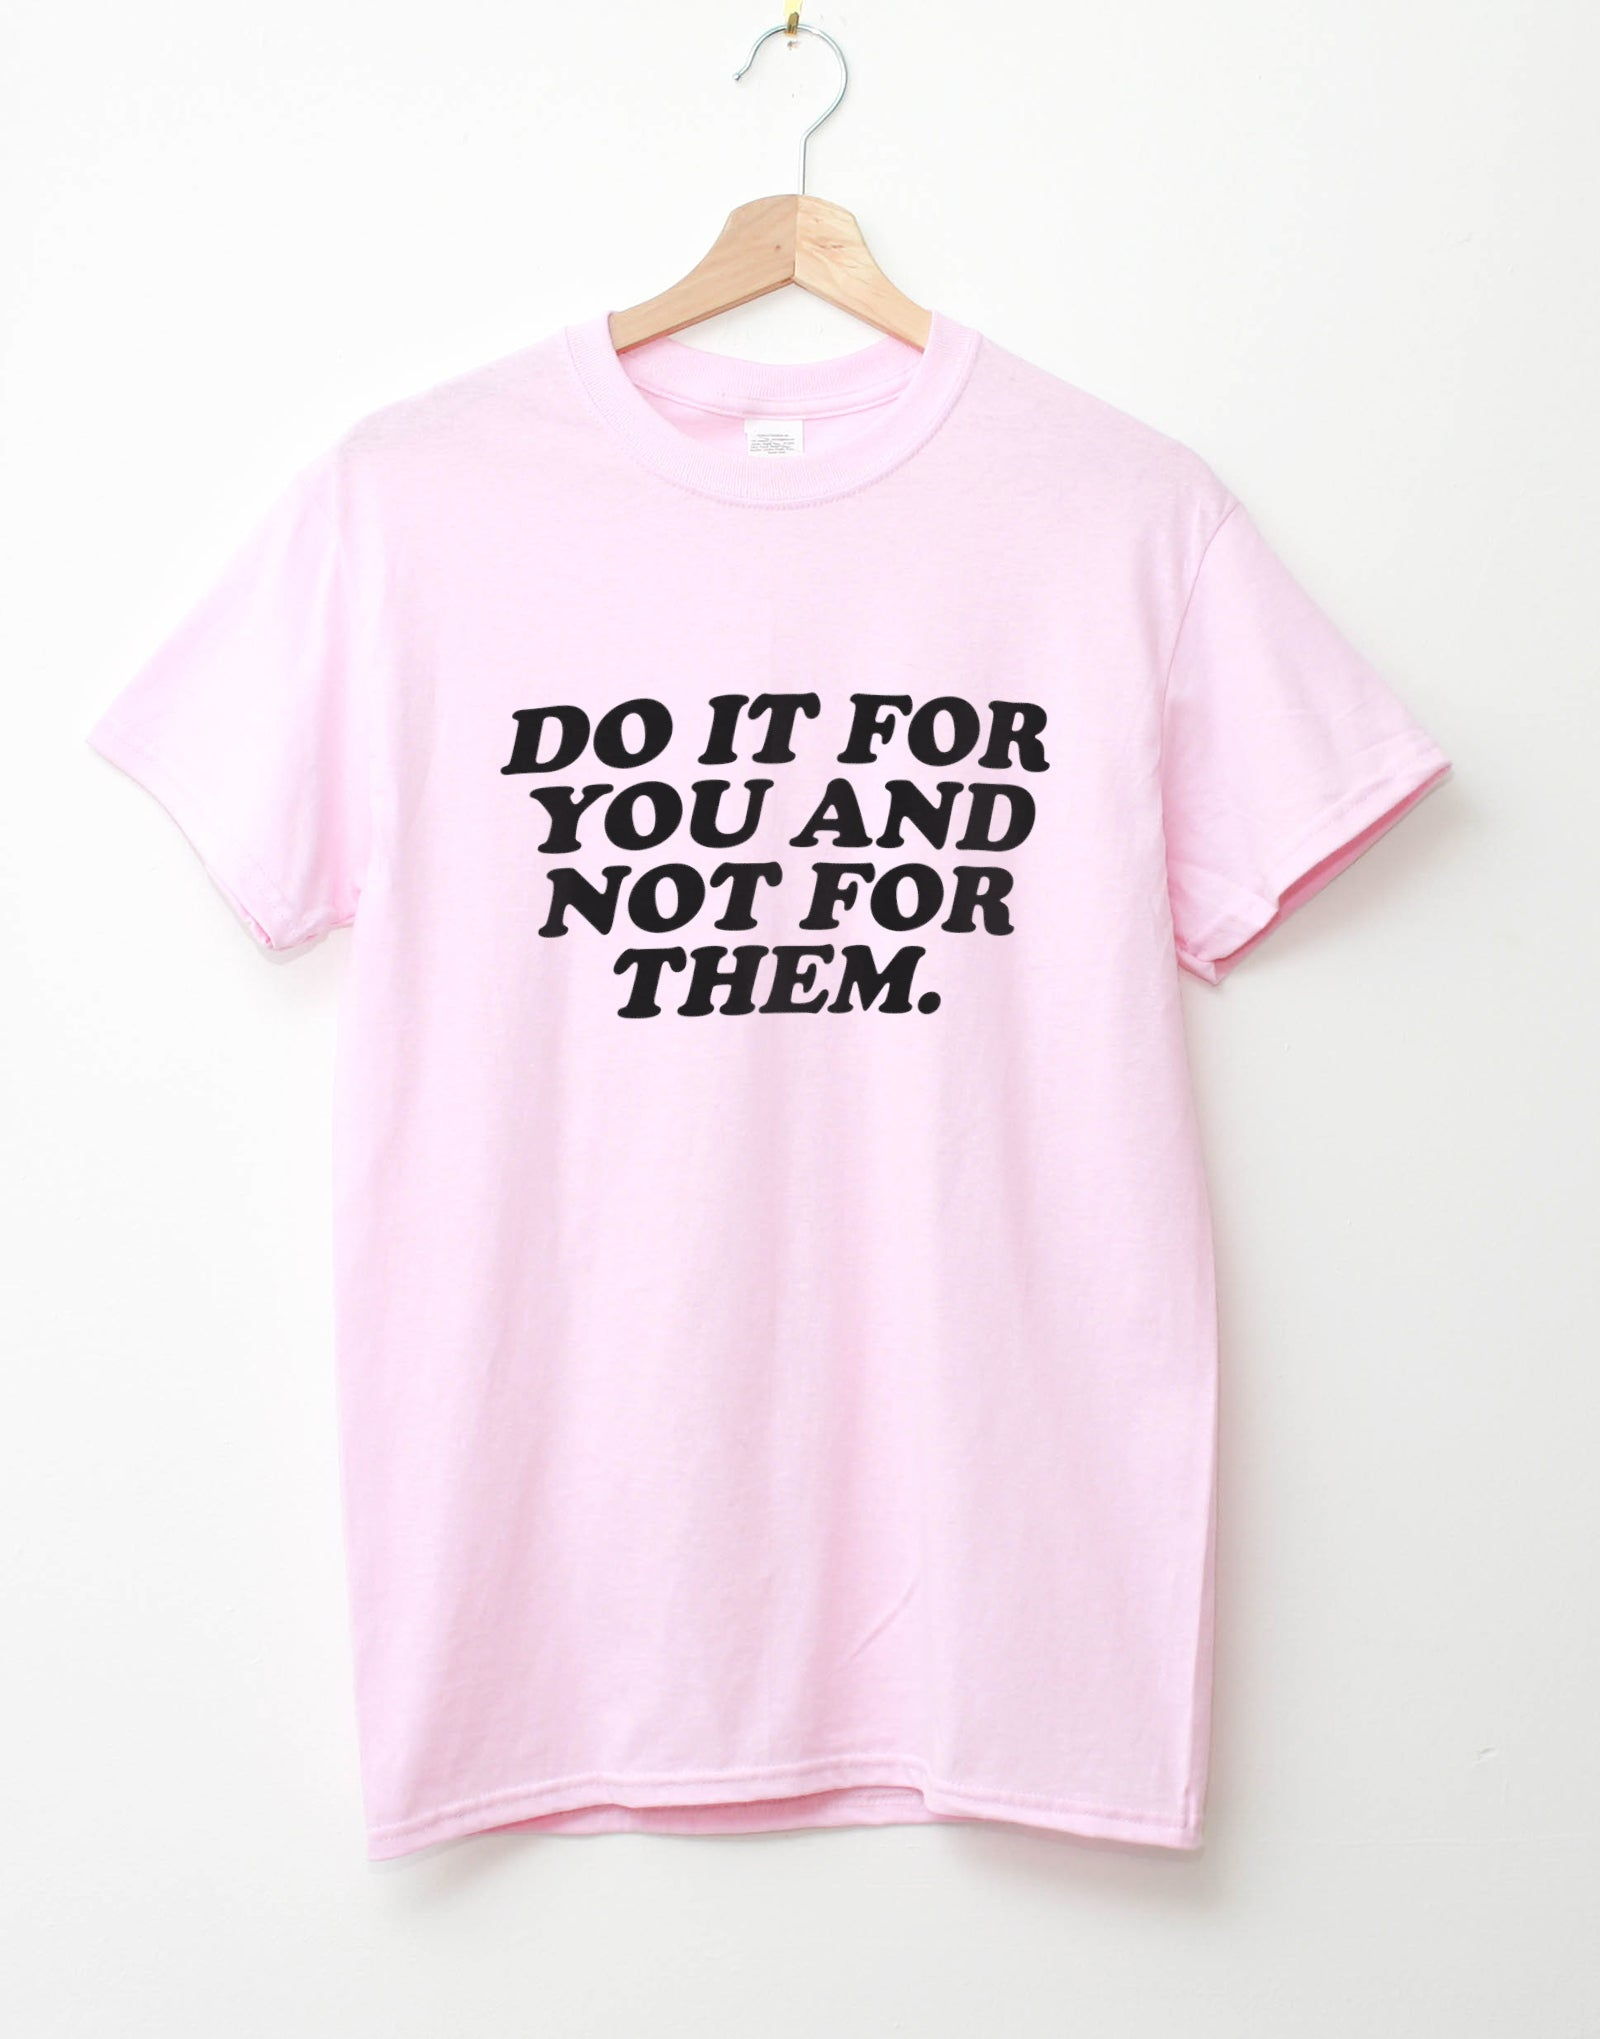 Do it for you and not for them. t-shirt (light pink)